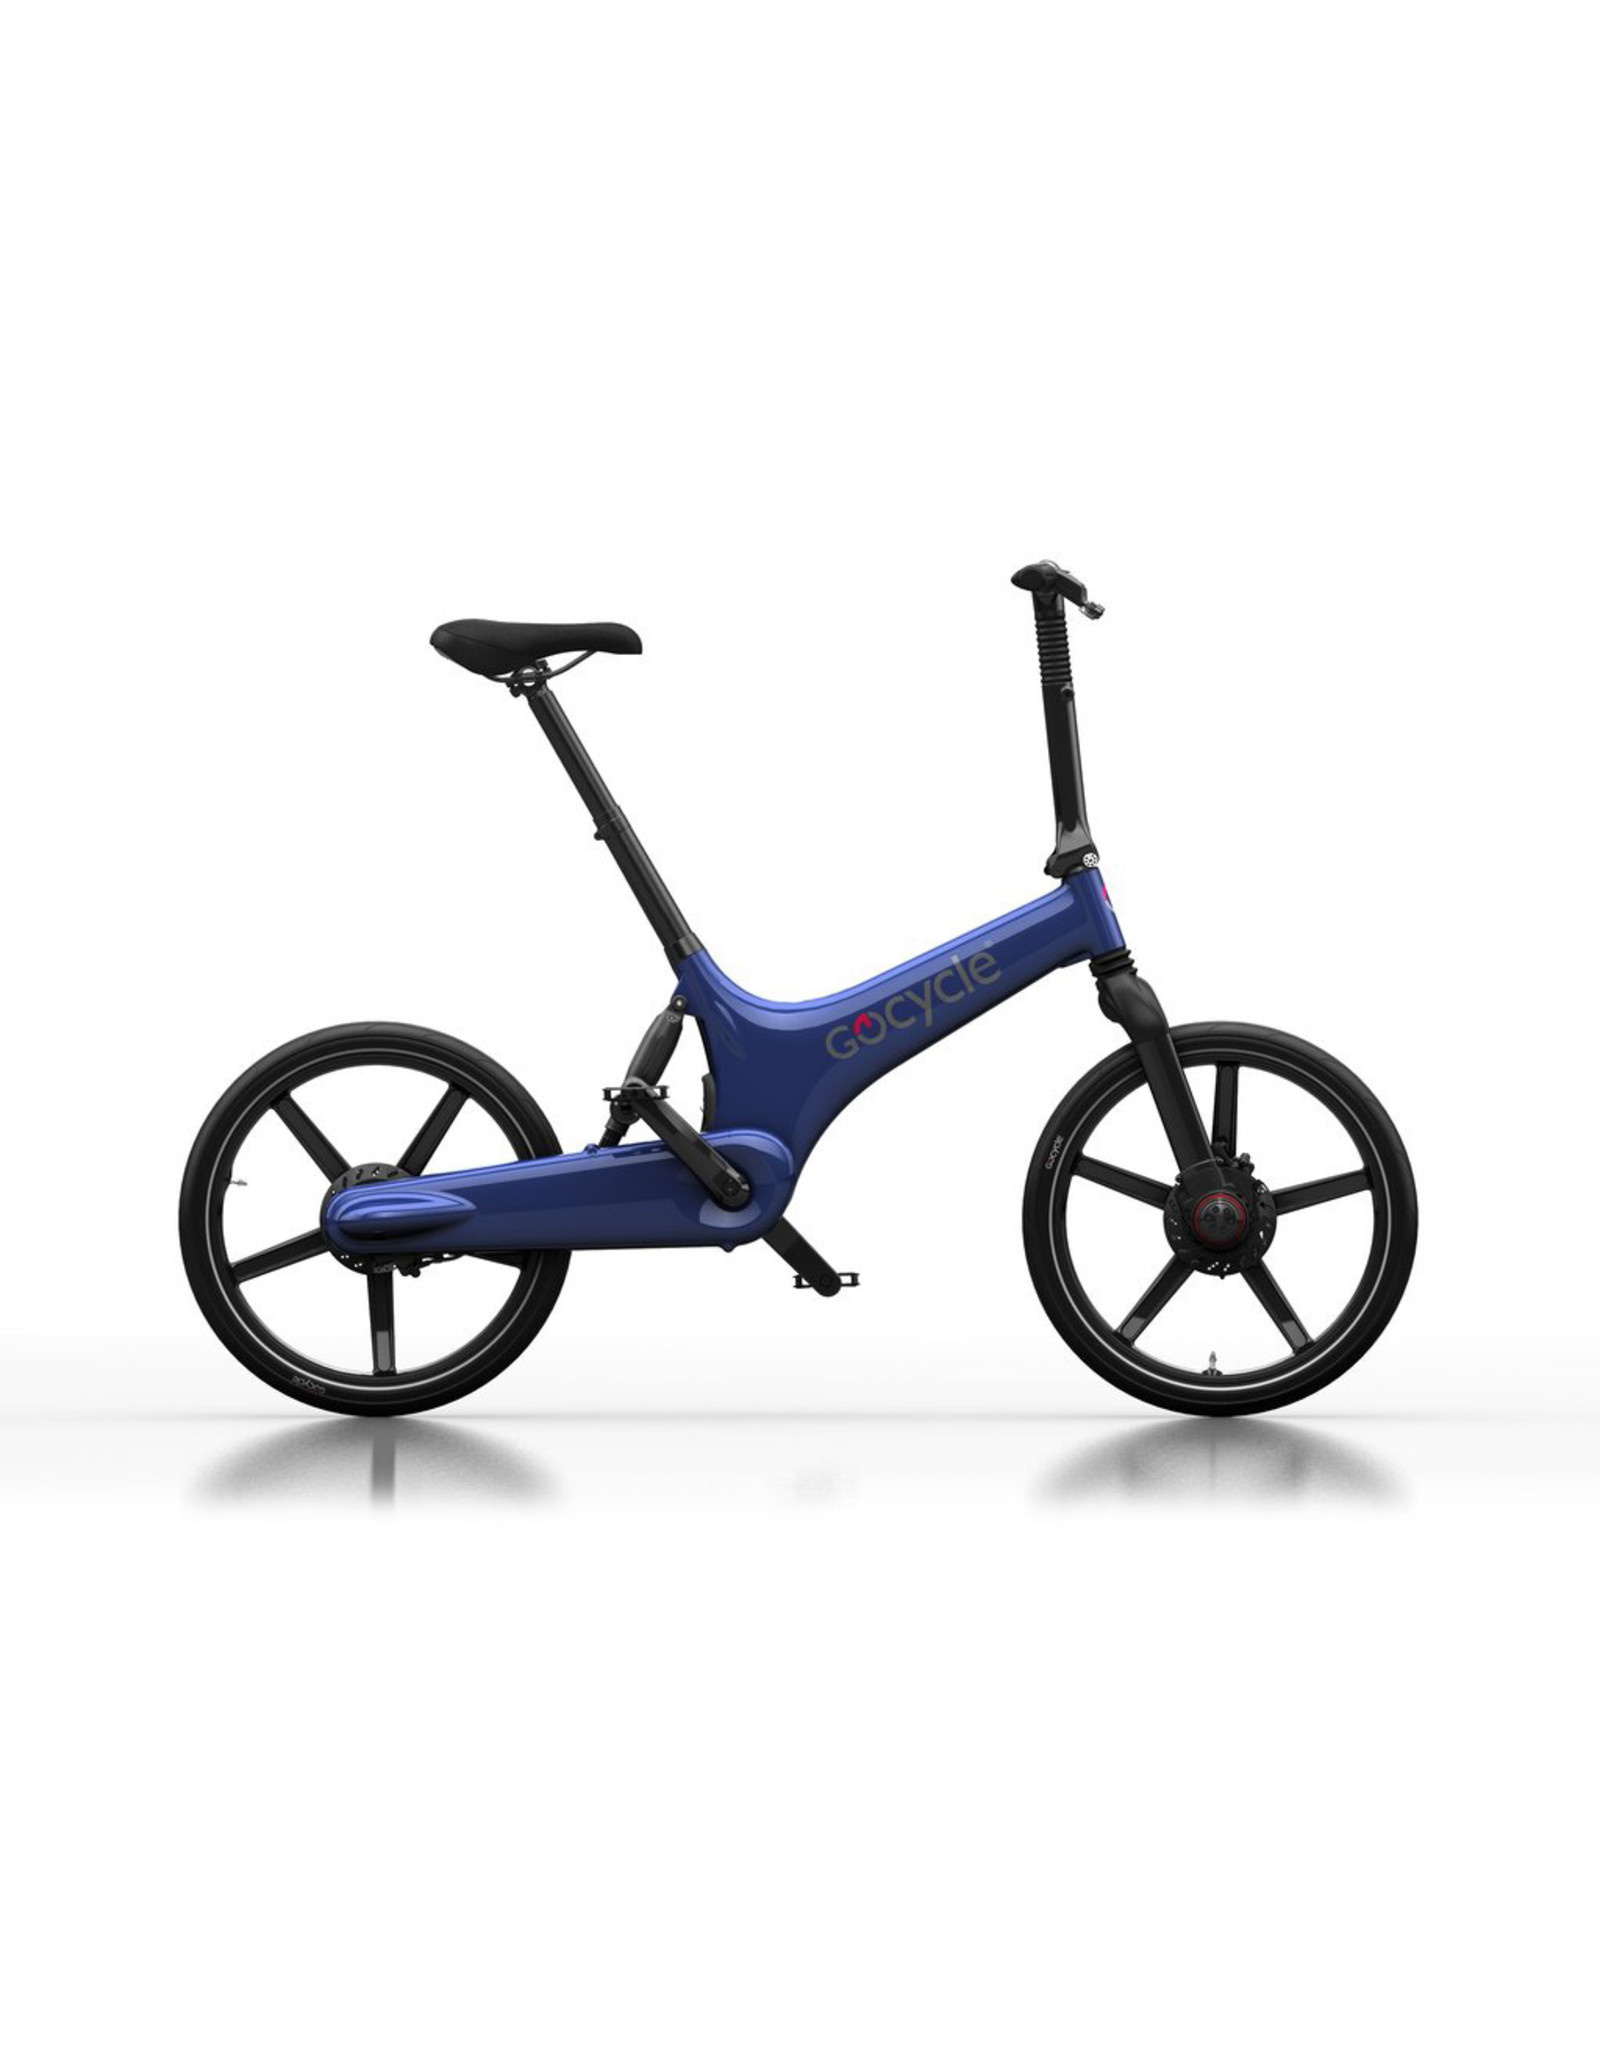 GoCycle GoCycle G3 Electric Blue